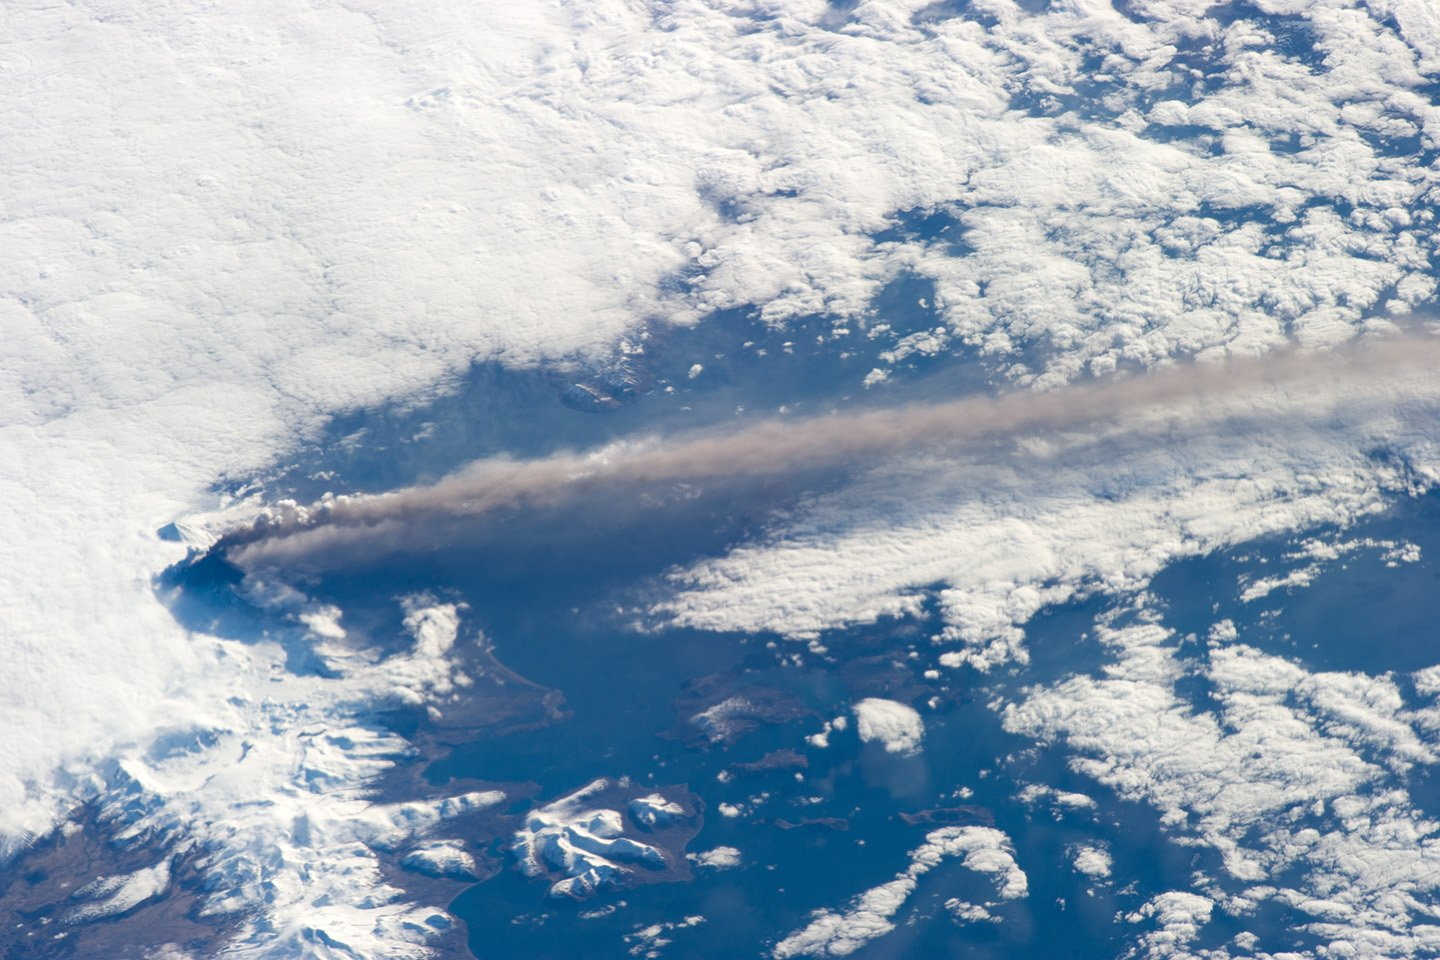 The eruption of Alaska's Pavlof Volcano as seen from the International Space Station May 18, 2013